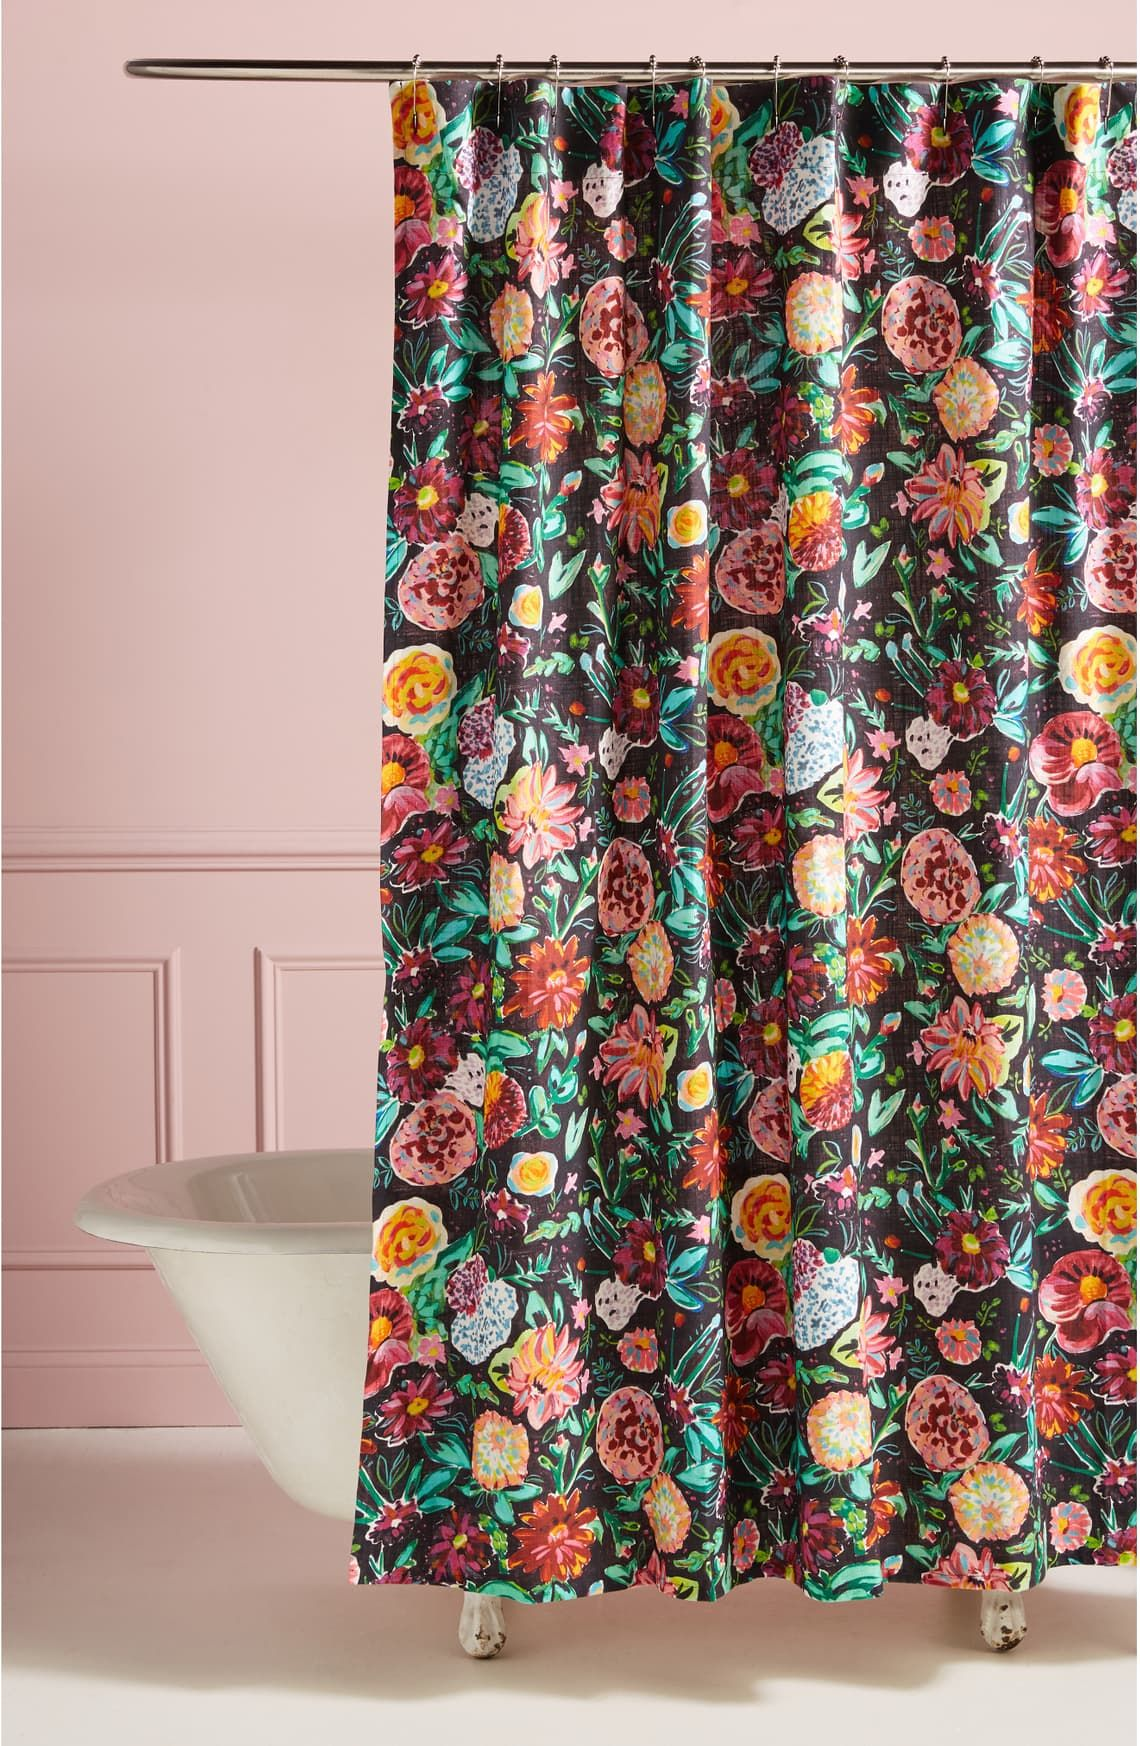 Anthropologie Home Caliope Shower Curtain Nordstrom In 2020 Anthropologie Shower Curtain Anthropologie Home Curtains